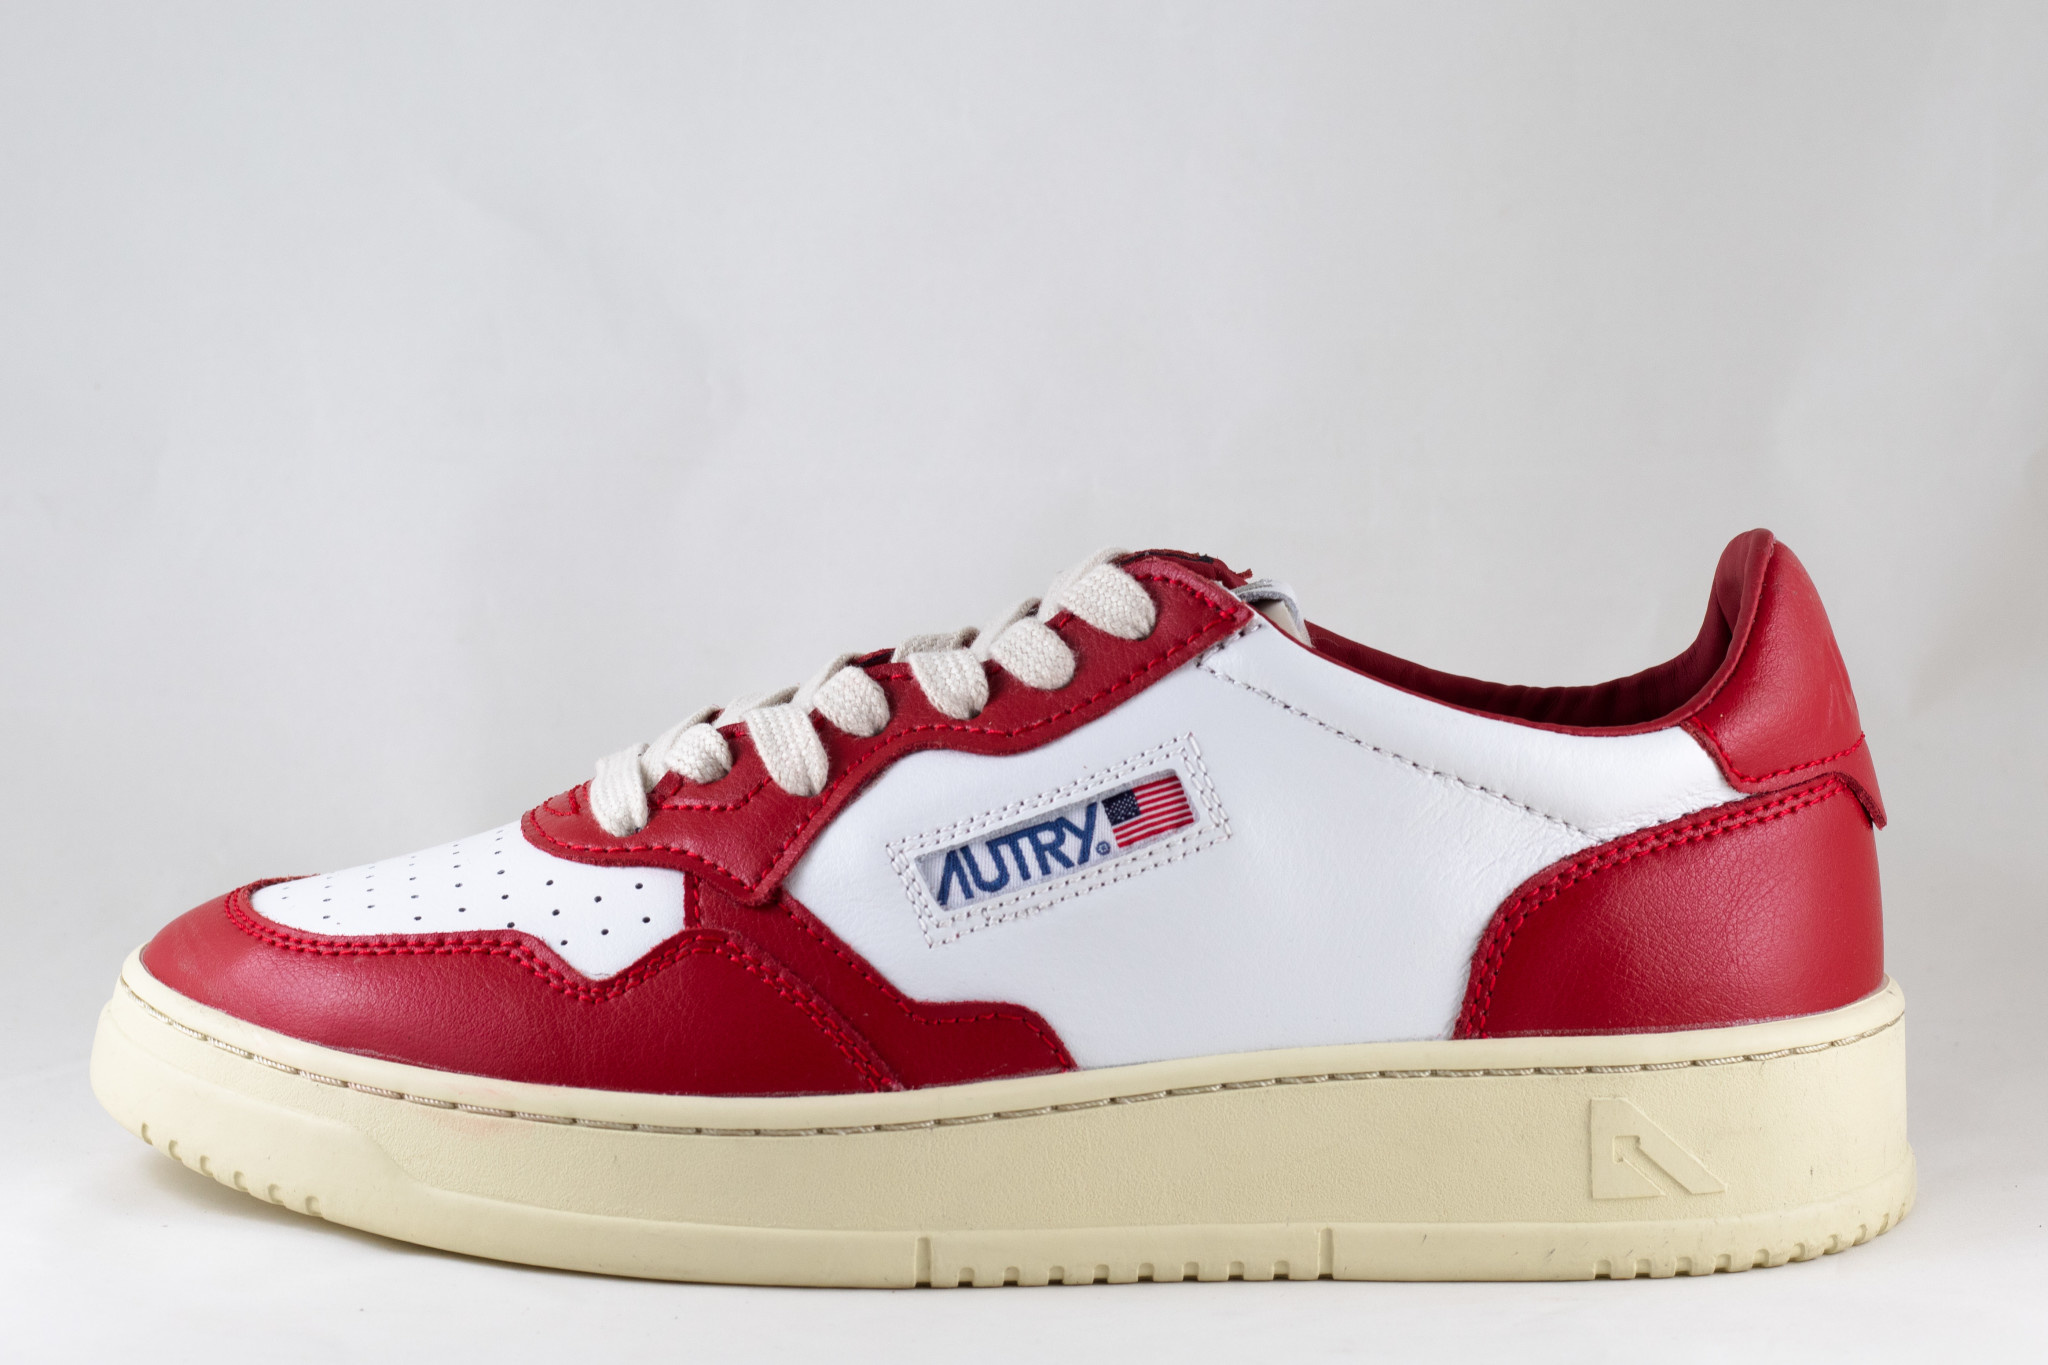 AUTRY  BU01 LOW MAN LEATHER White/ Red